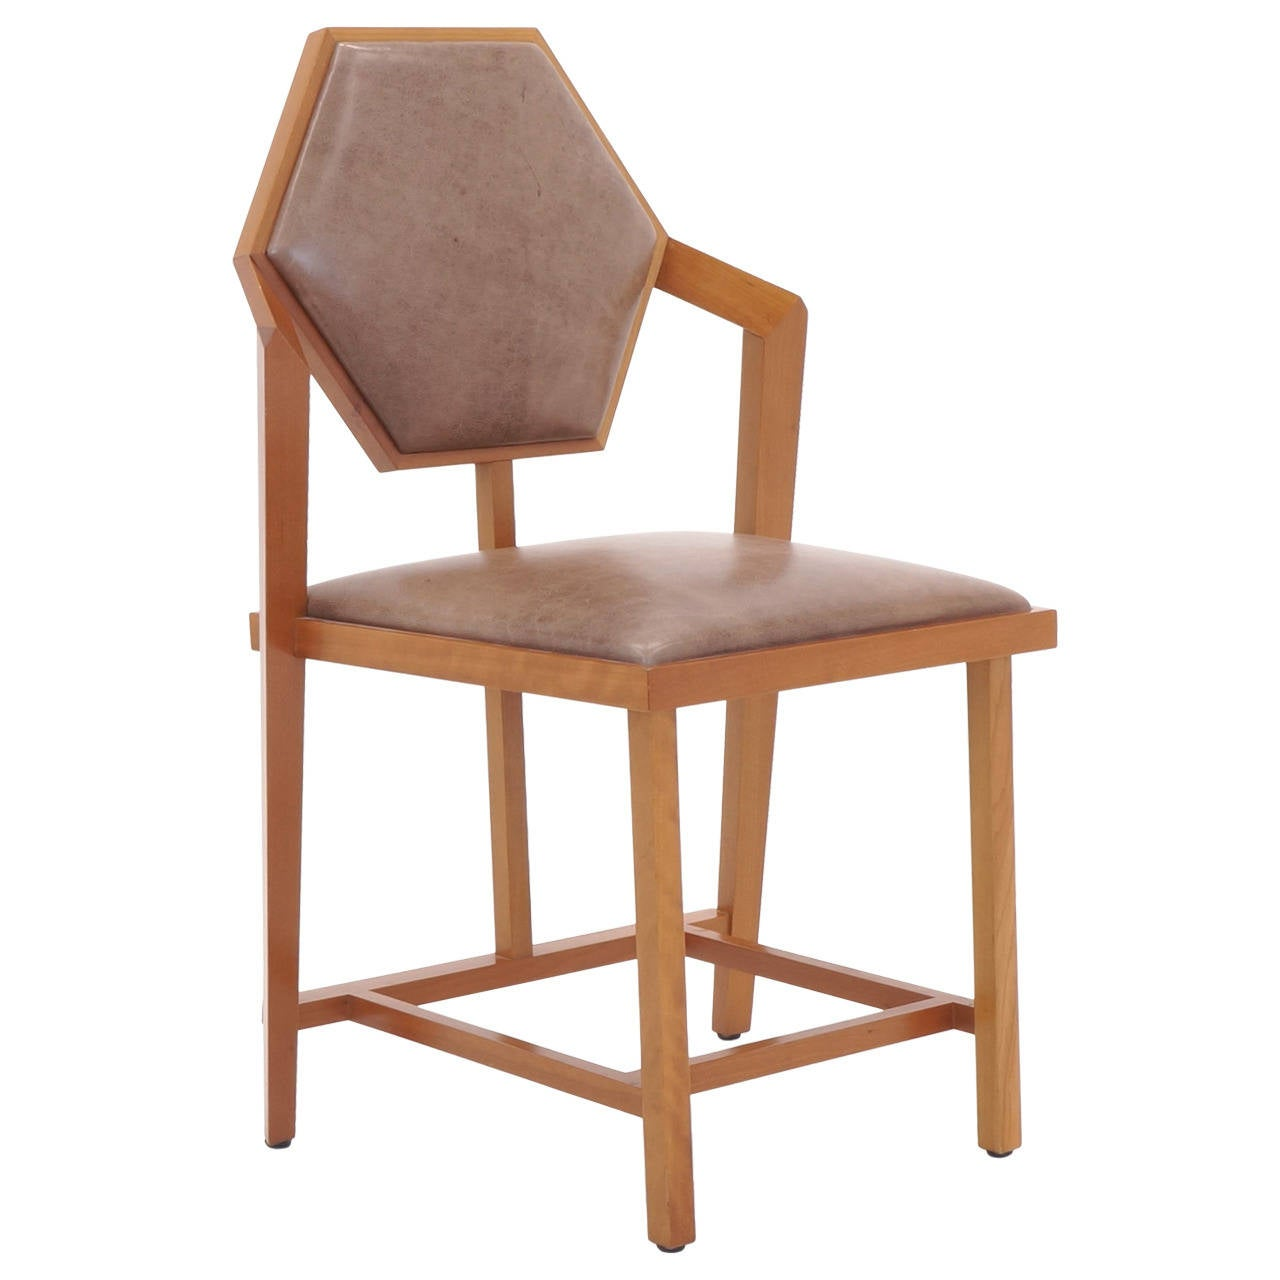 Frank Lloyd Wright Chair for Cassina at 1stdibs